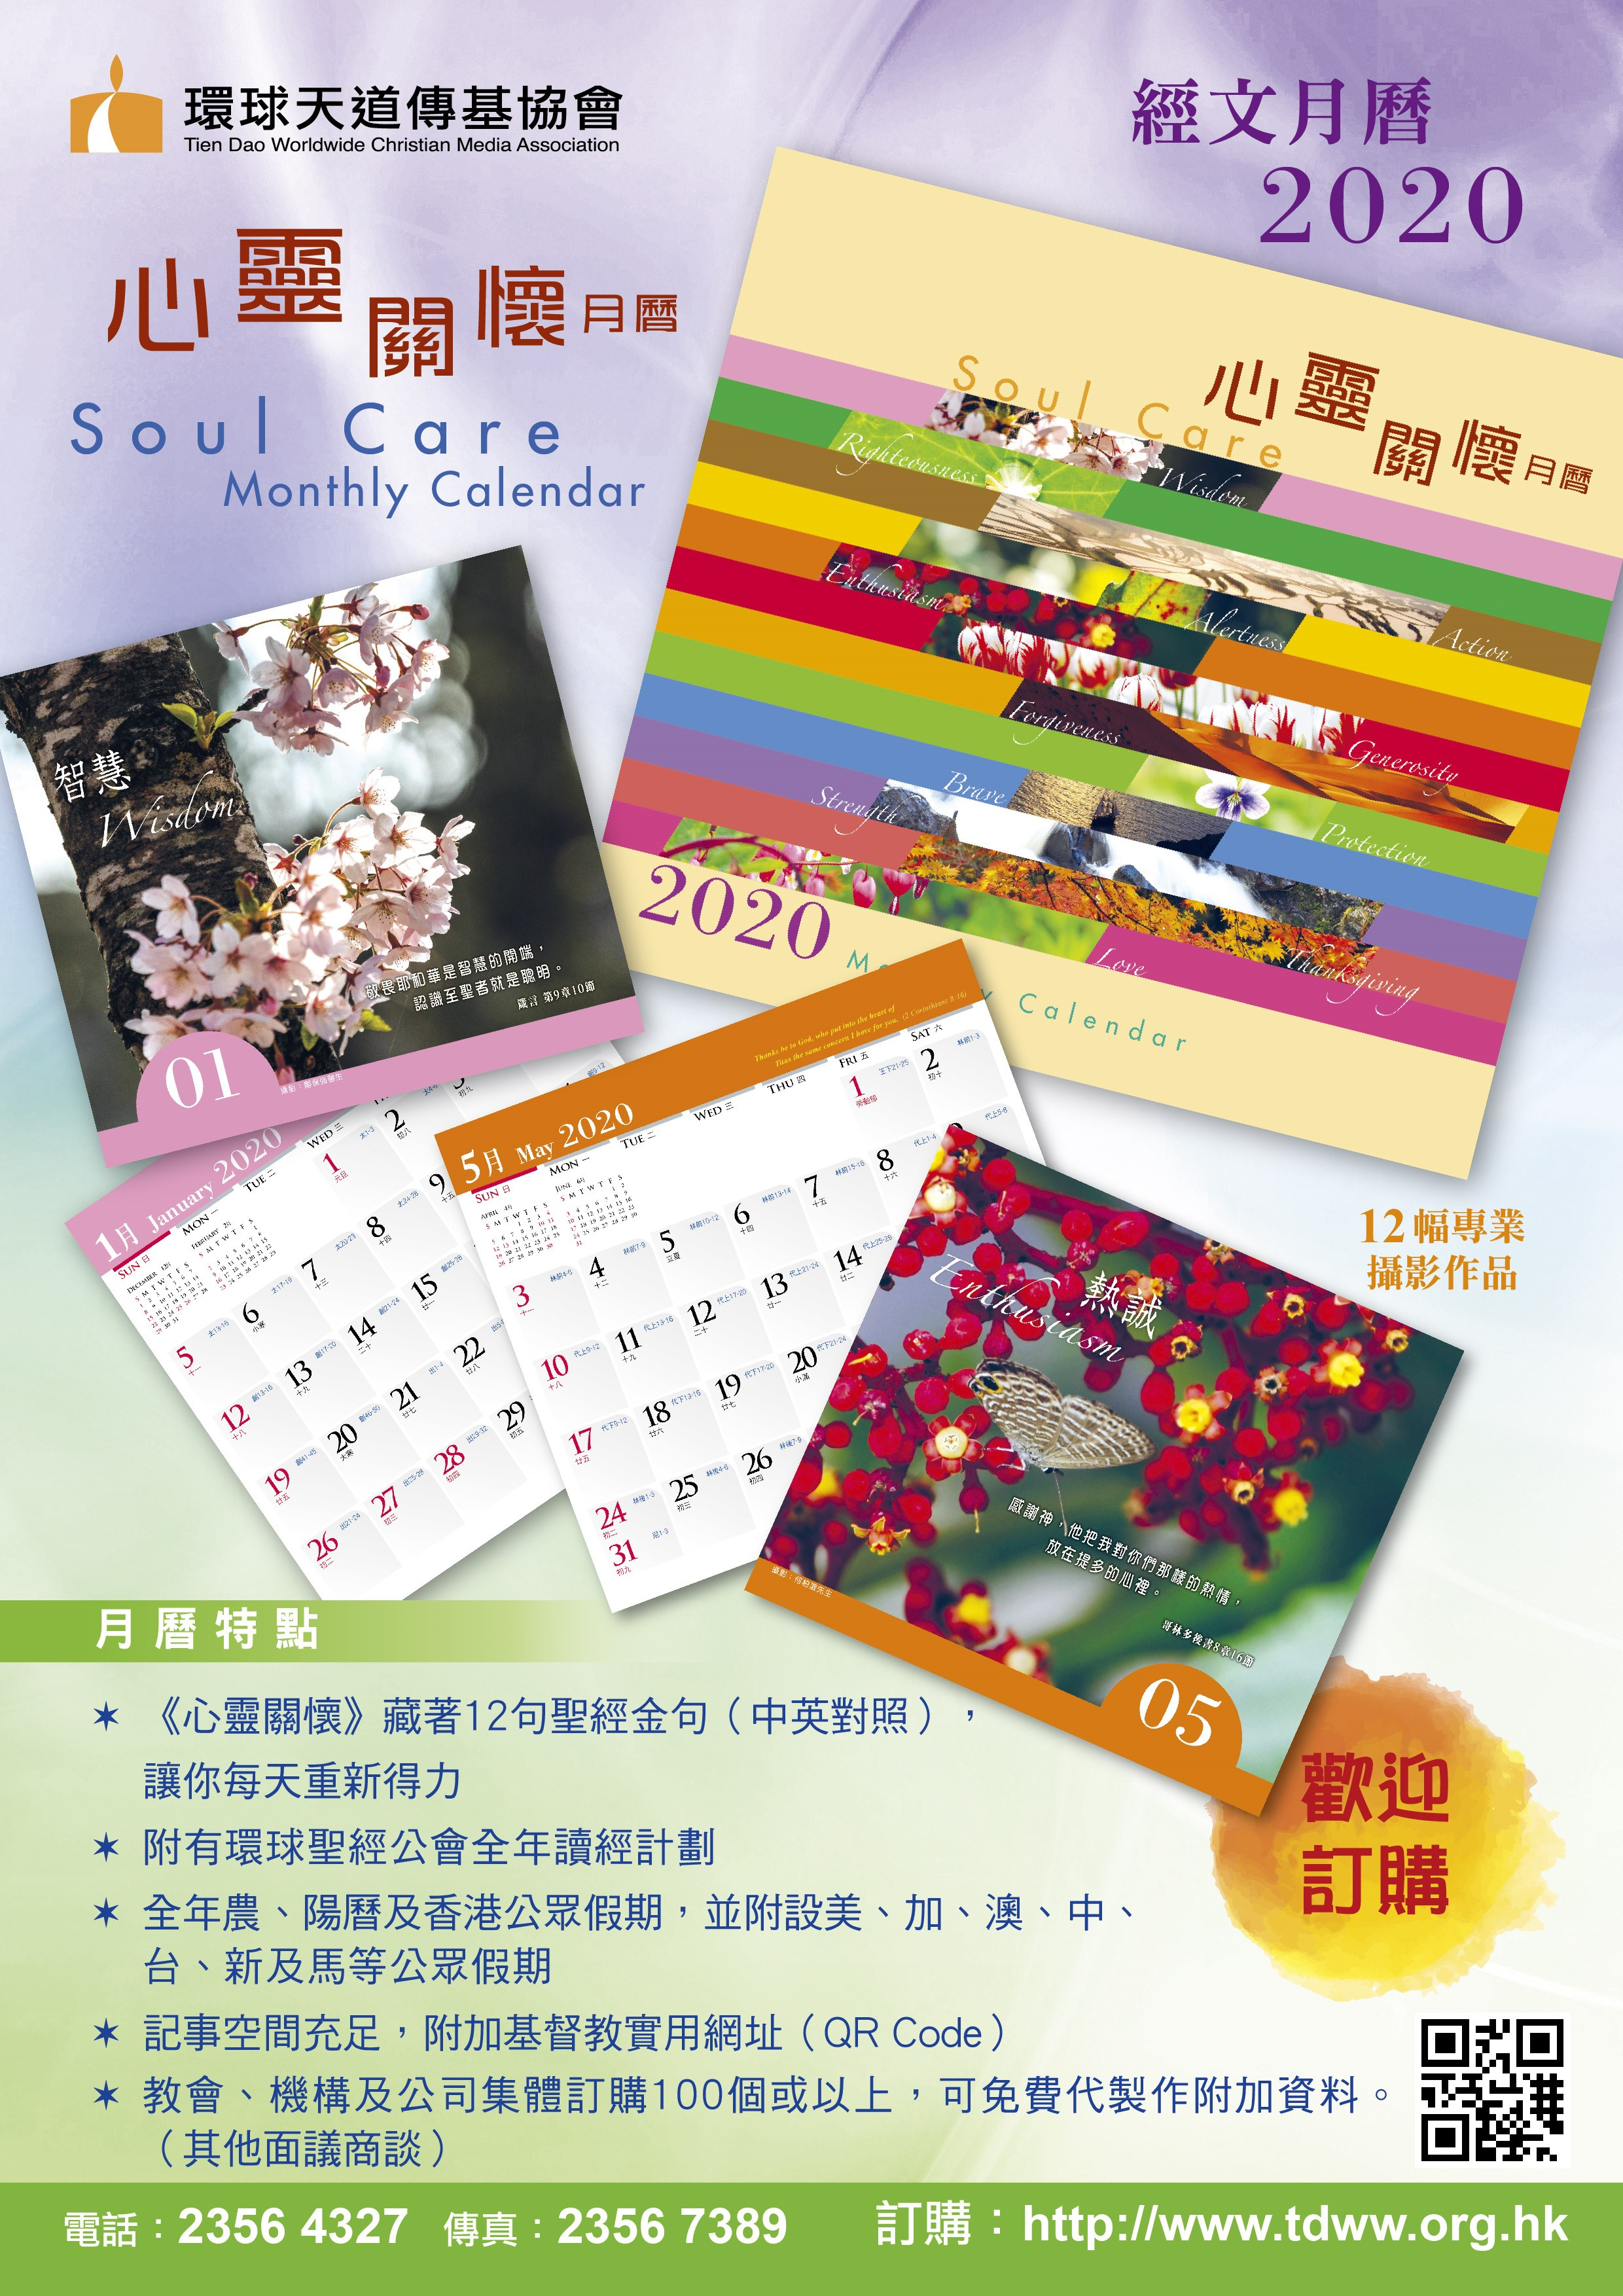 2020 Calendar promotion_A4_A-01_revised